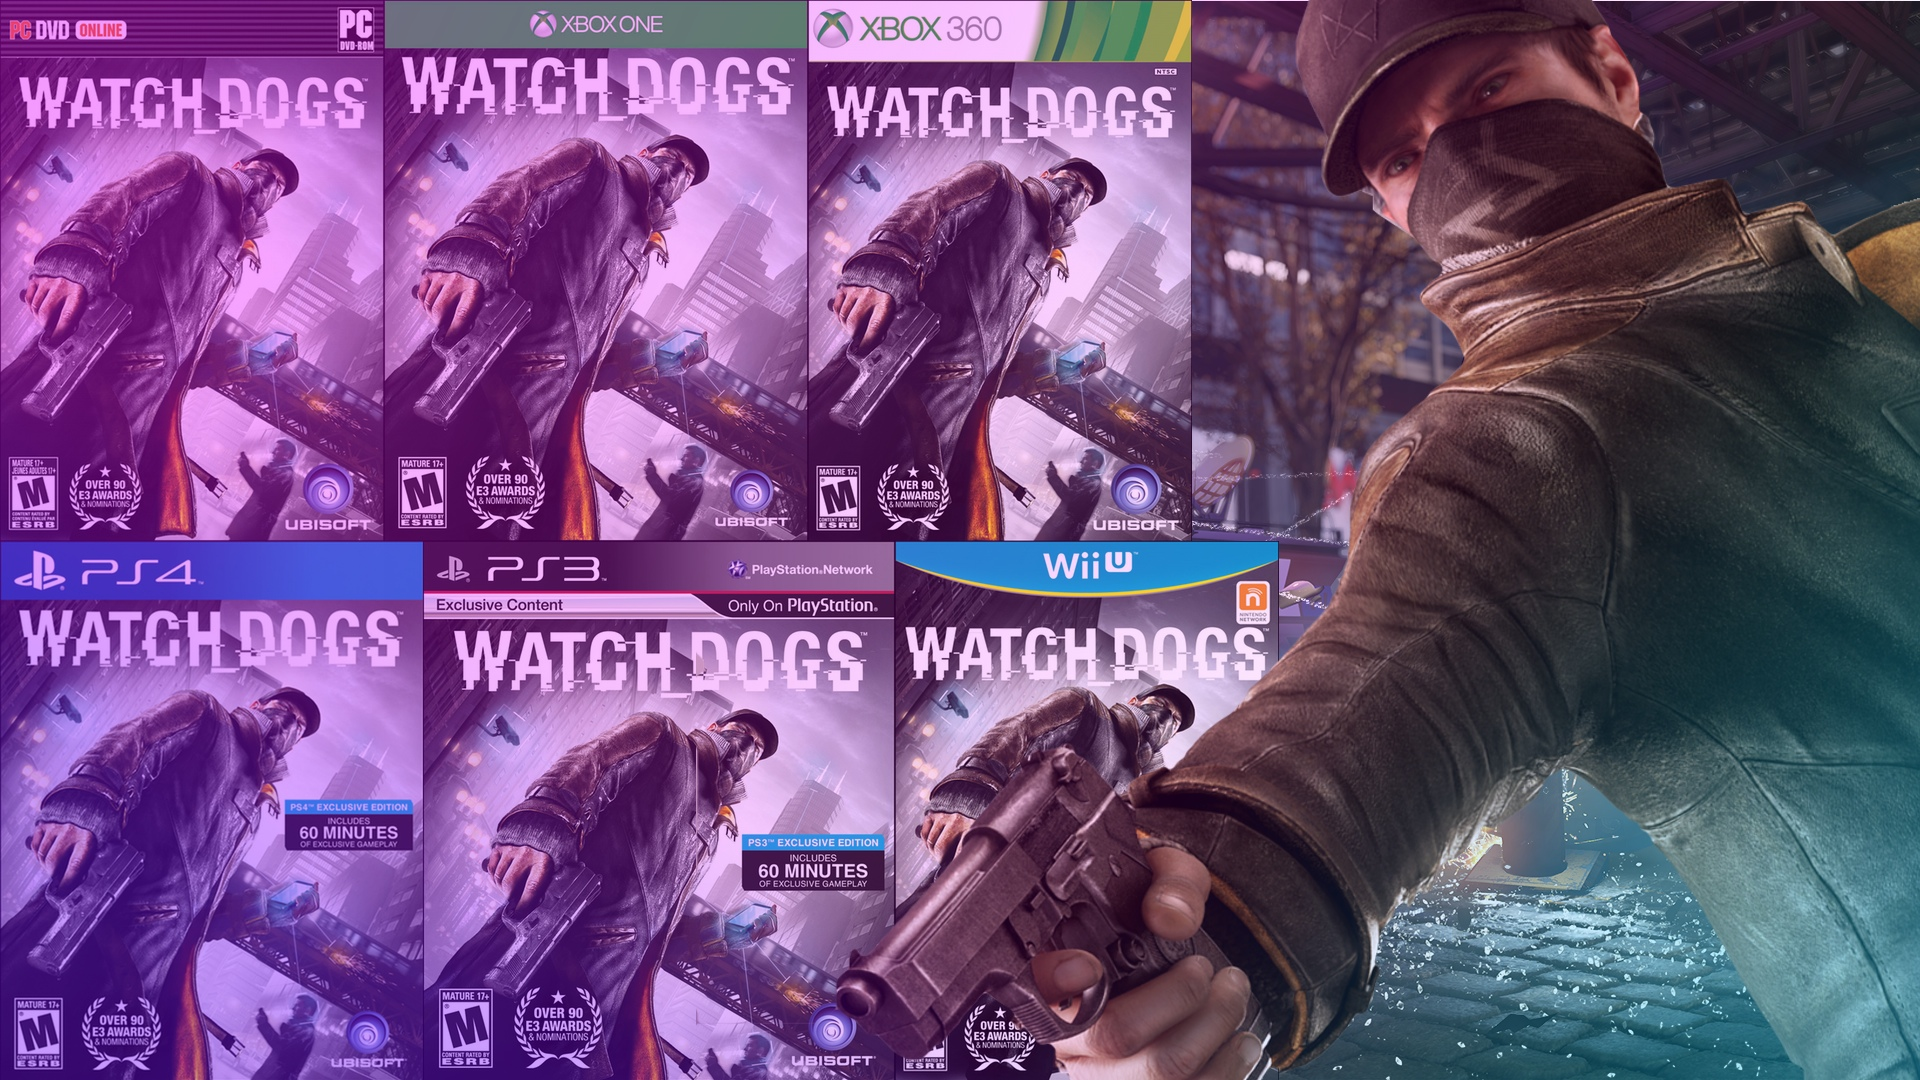 Watch Dogs special editions total $1,240, but do you really need that hat?